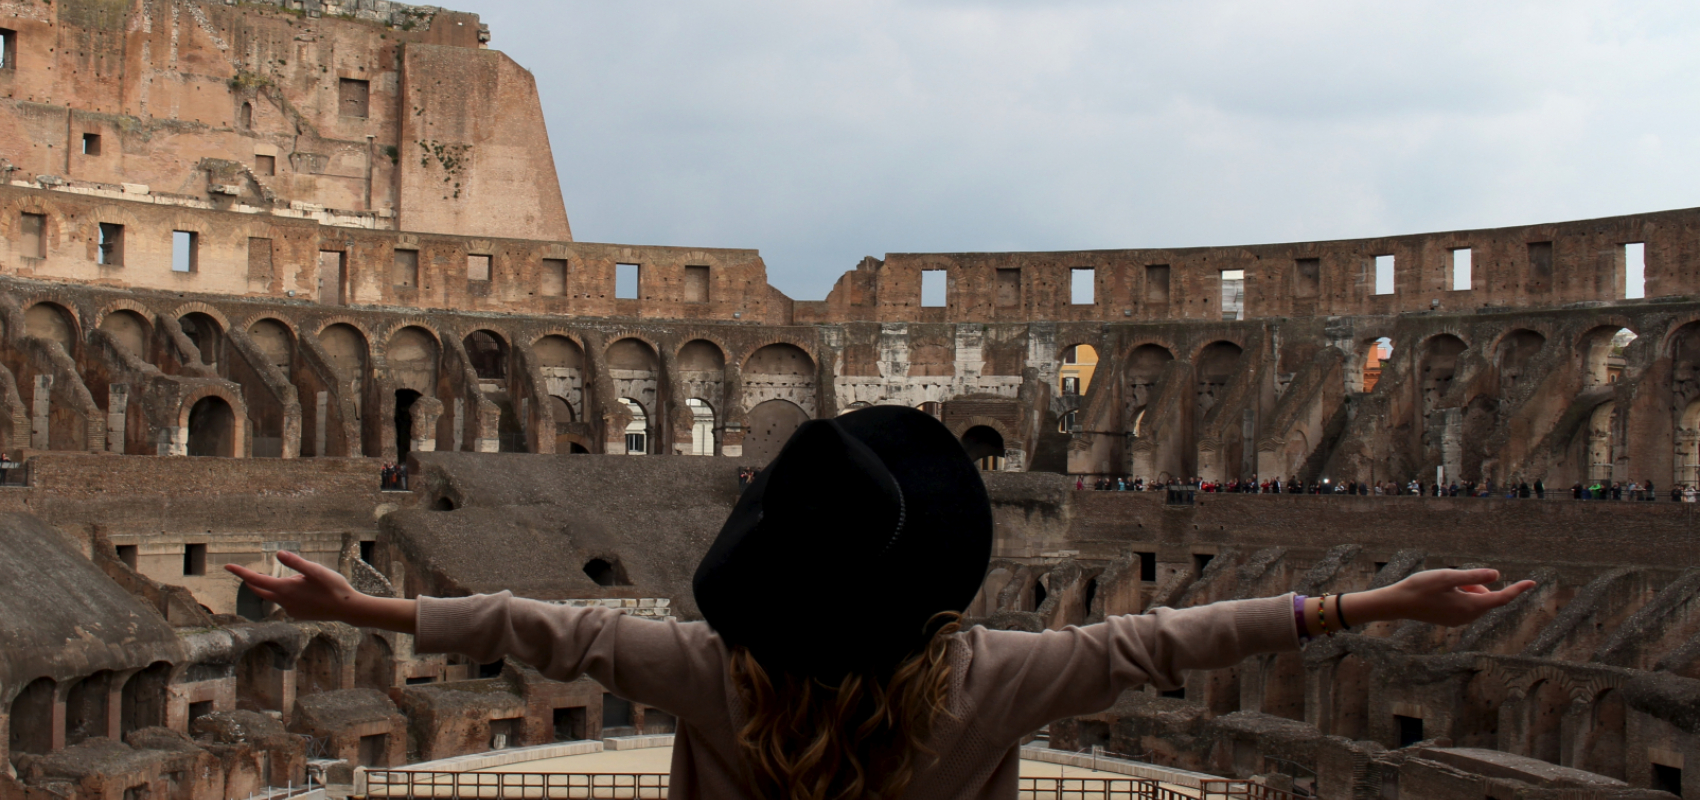 Student in Rome arms outstretched